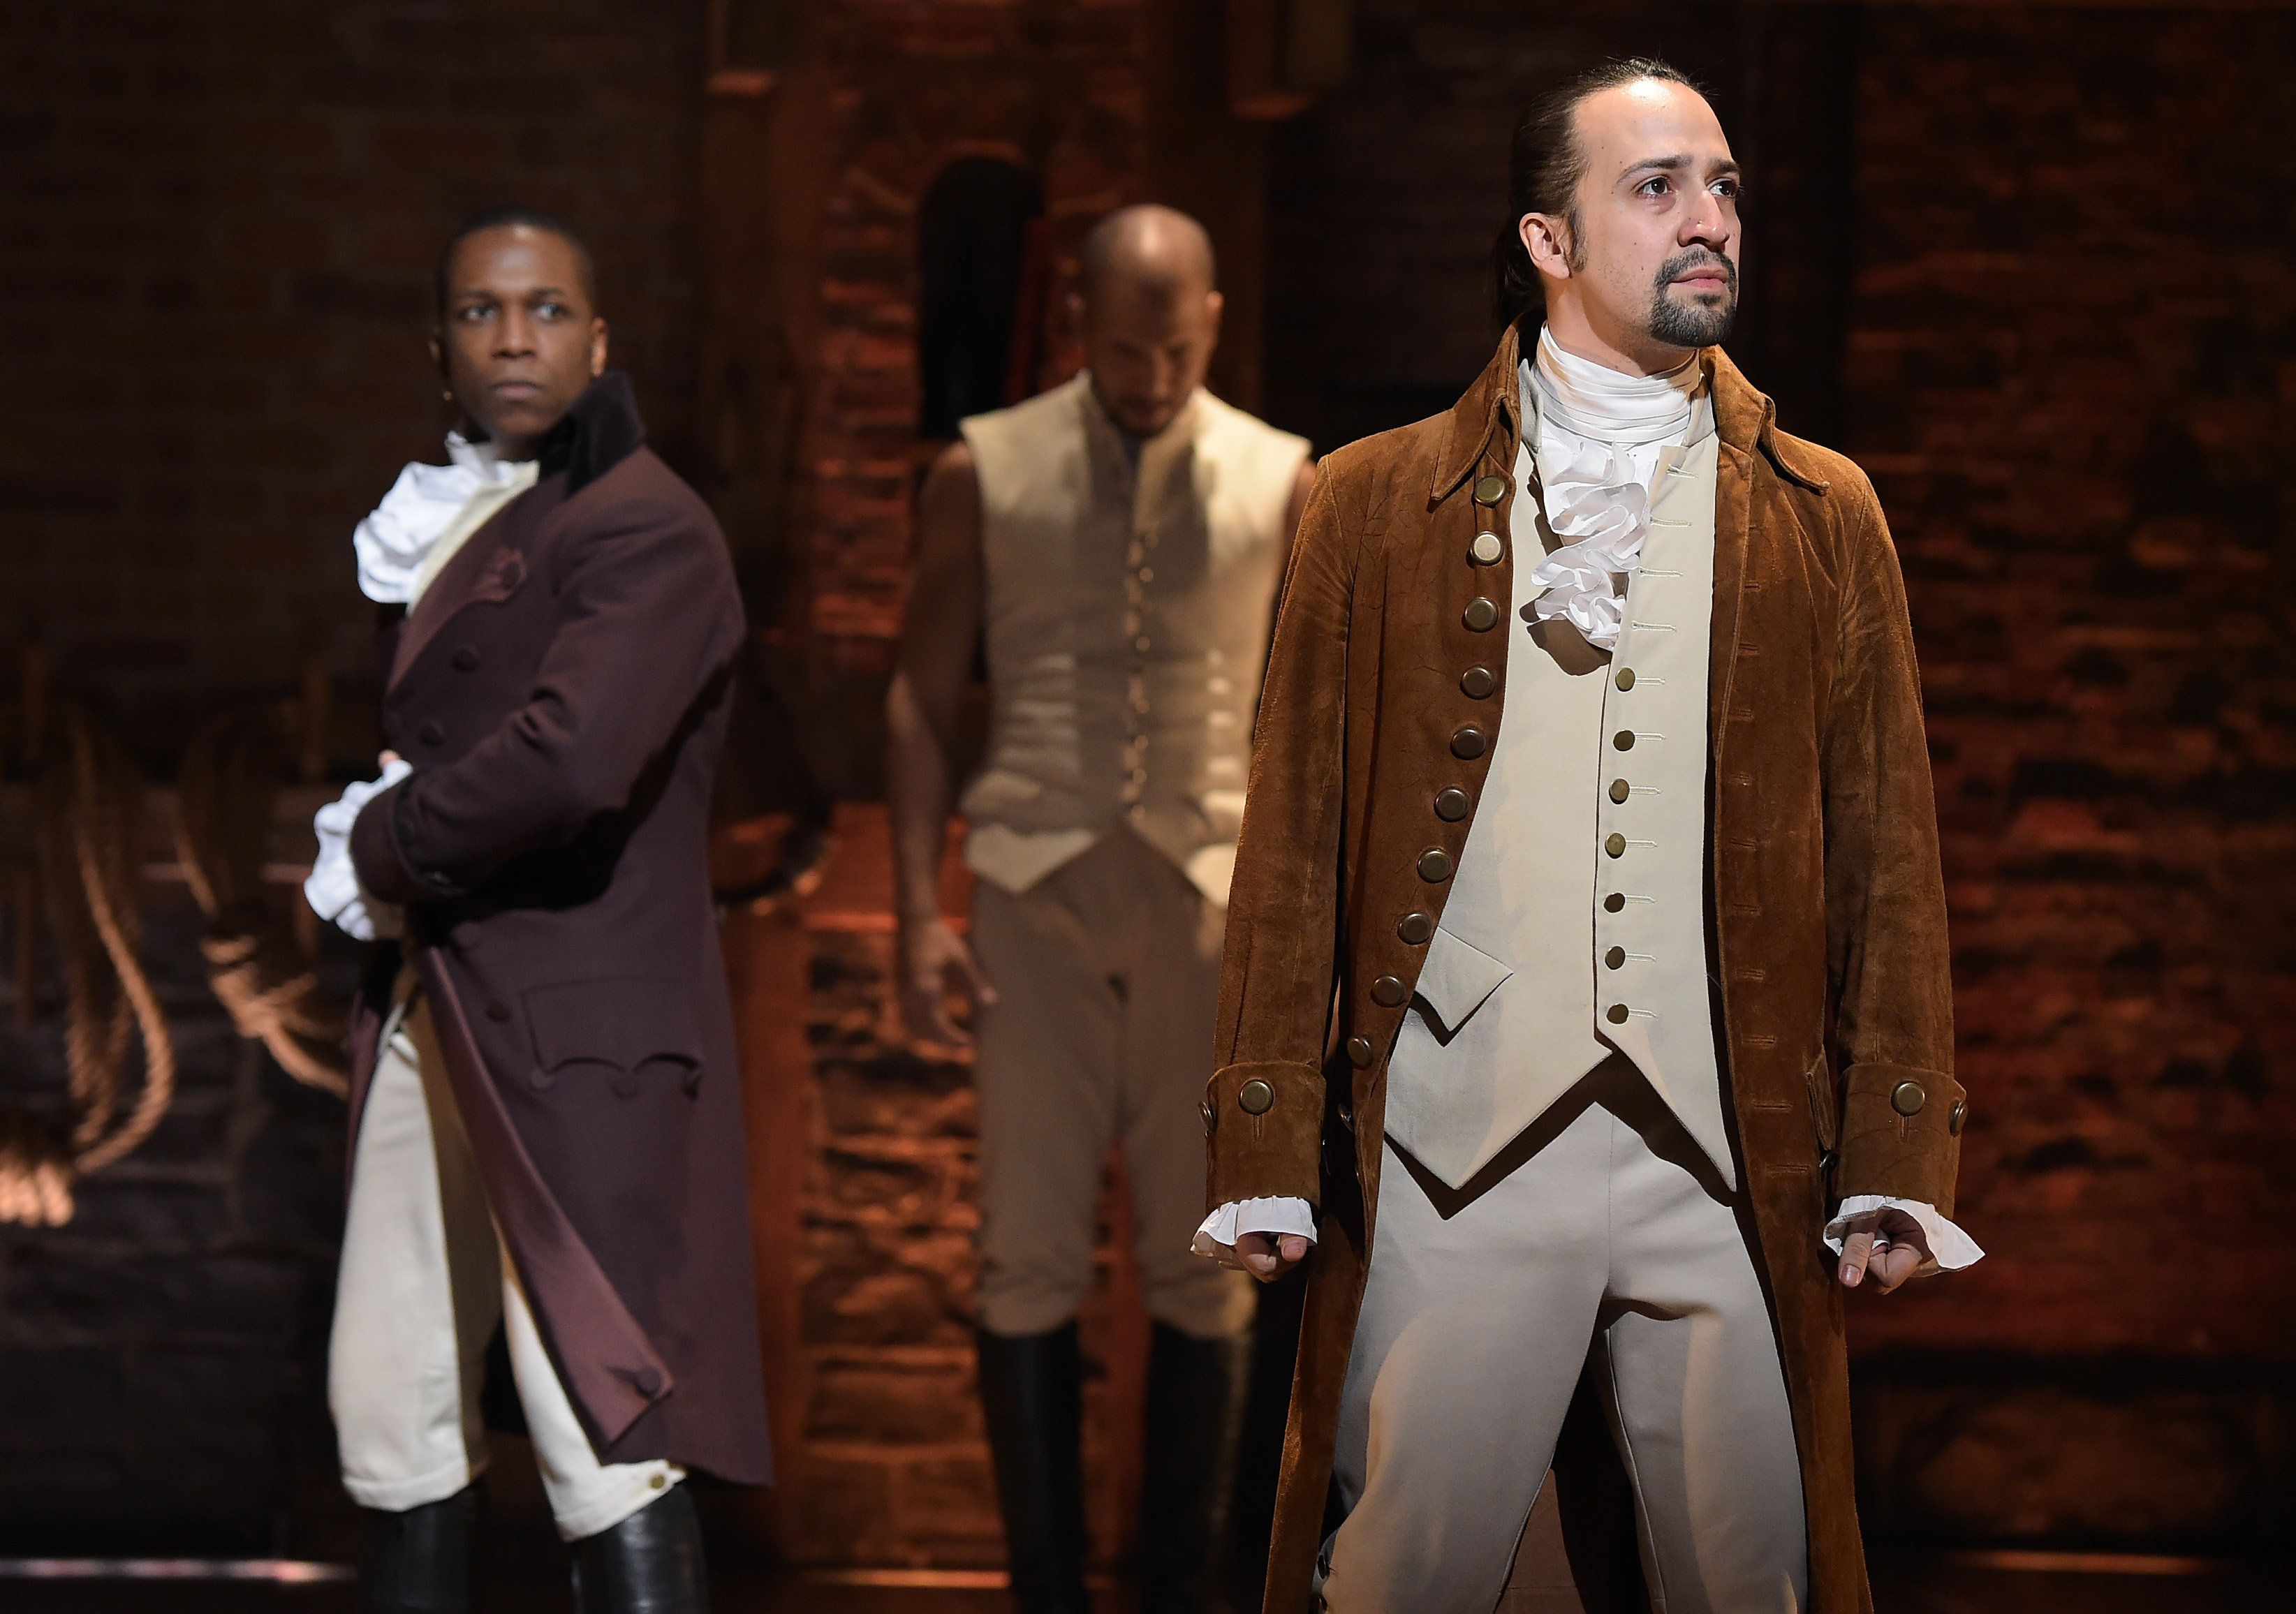 NEW YORK, NY - FEBRUARY 15:  Actor Leslie Odom, Jr. (L)  and actor, composer Lin-Manuel Miranda (R) perform on stage during 'Hamilton' GRAMMY performance for The 58th GRAMMY Awards at Richard Rodgers Theater on February 15, 2016 in New York City.  (Photo by Theo Wargo/WireImage)